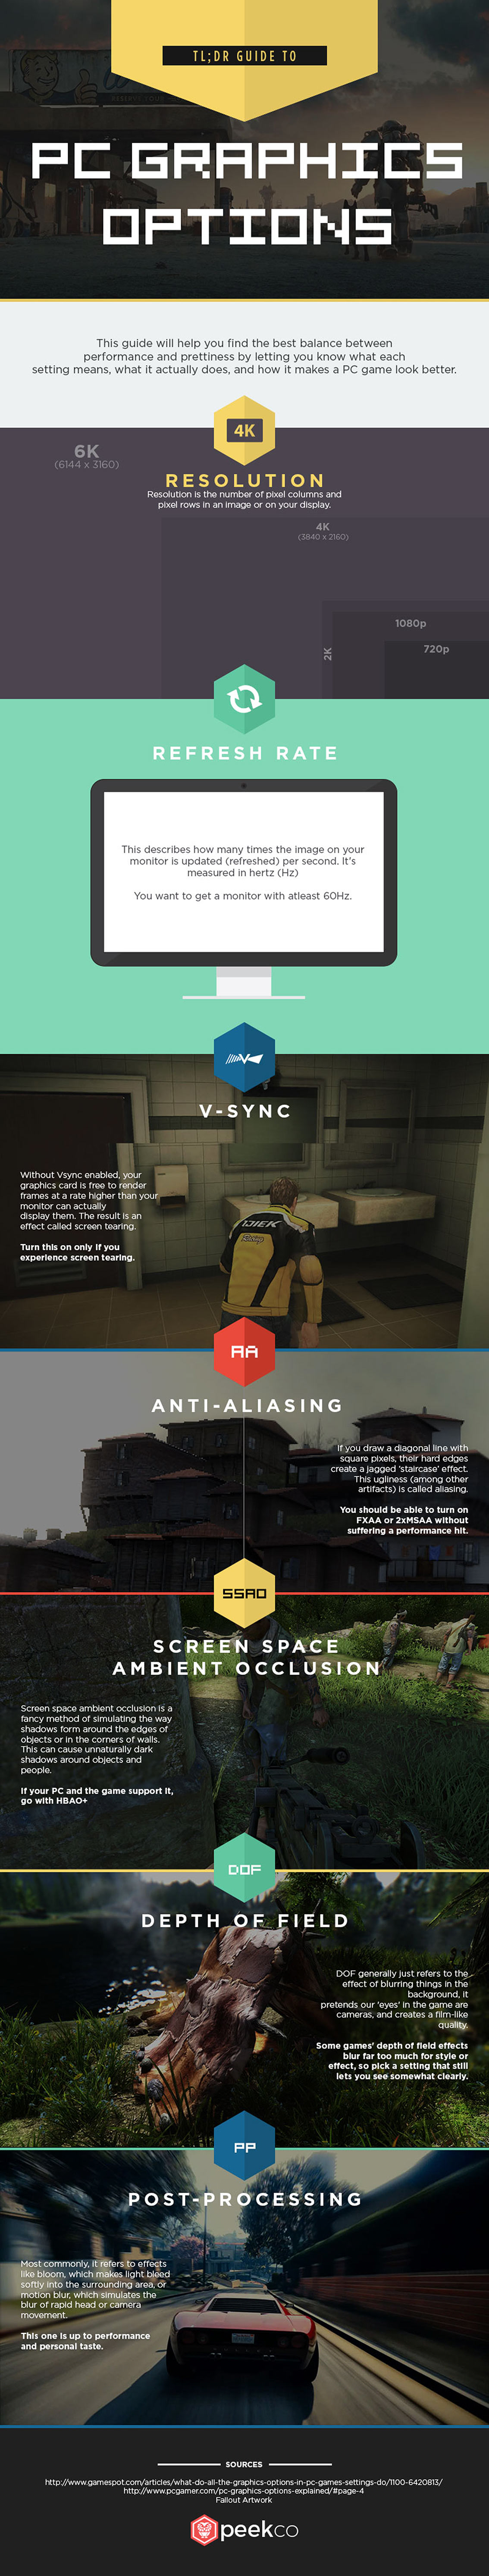 Guide to PC Graphics Options Infographic